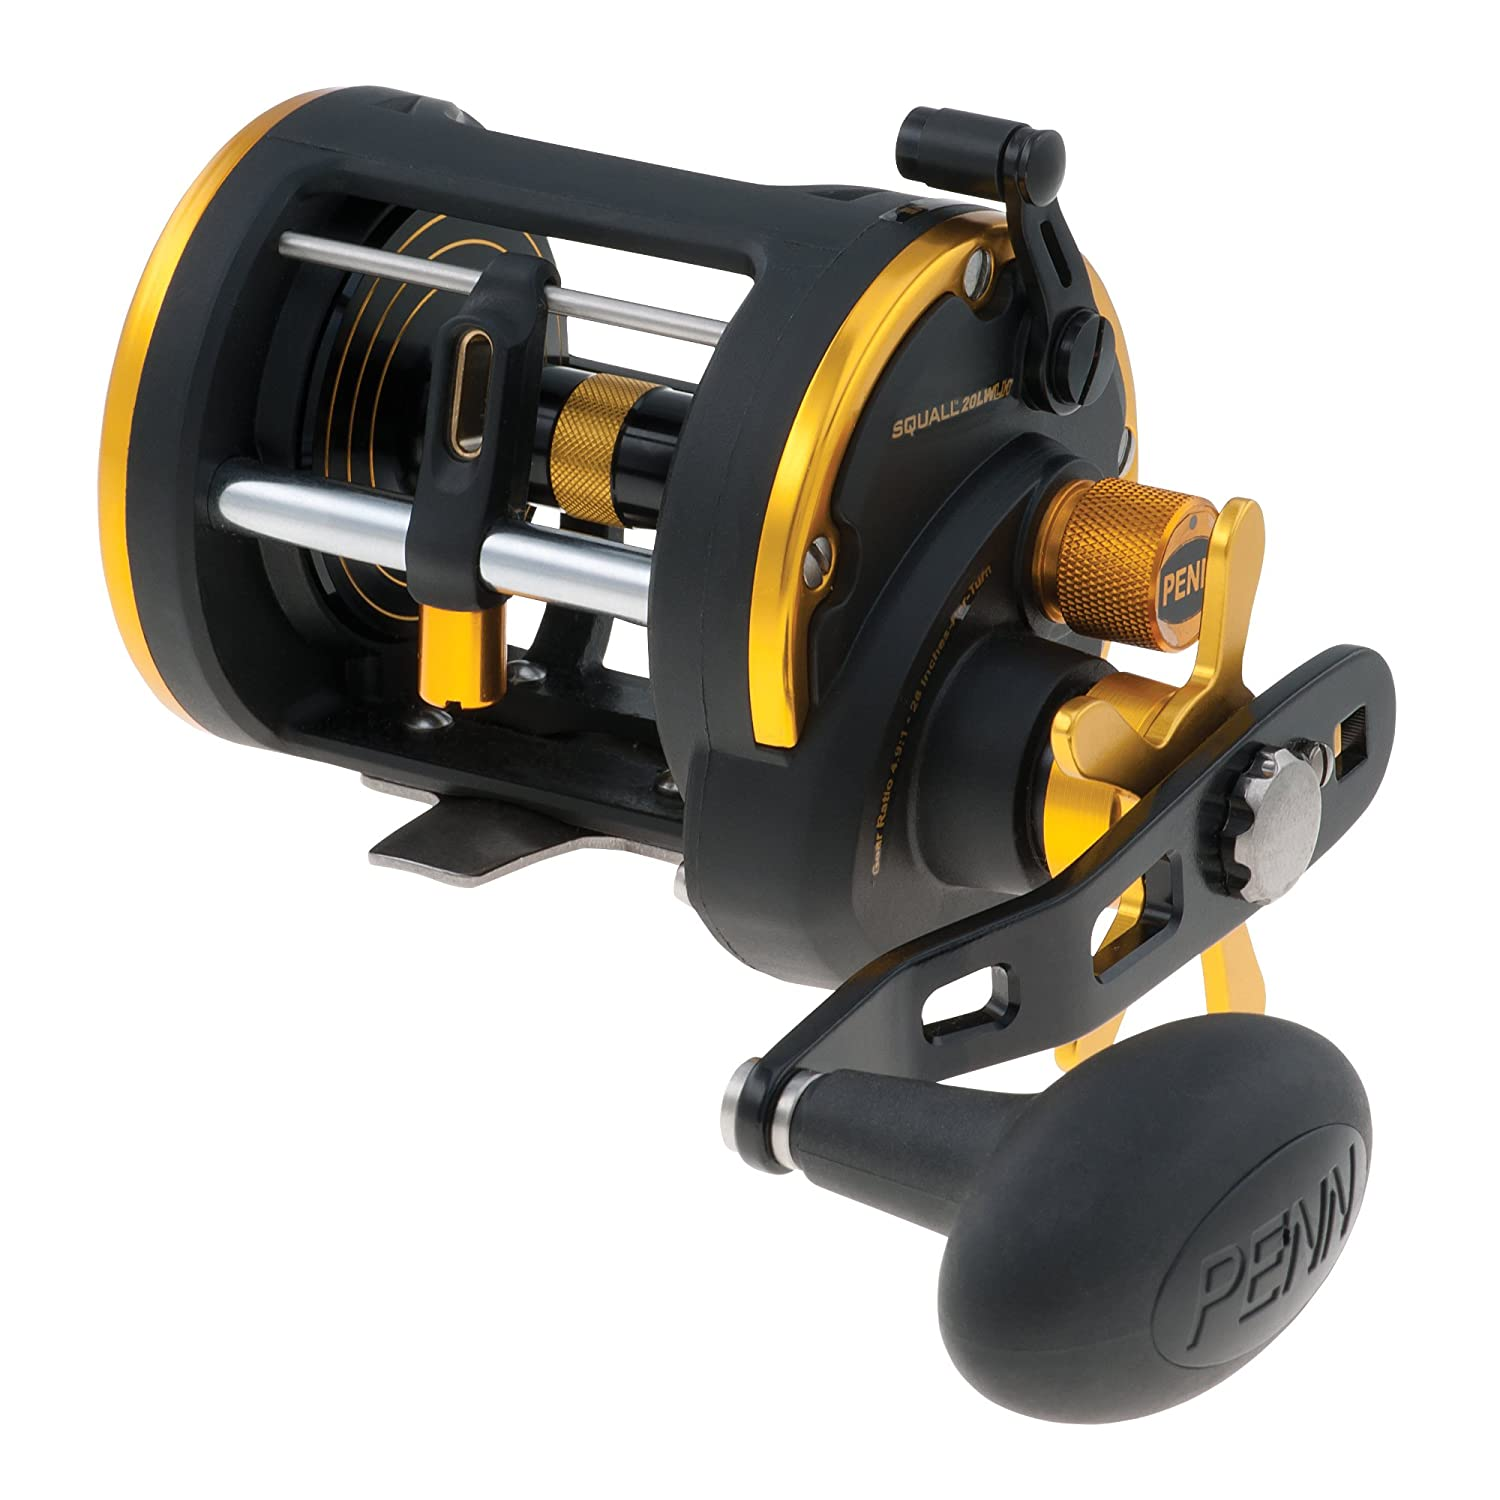 This is a baitcasting reel